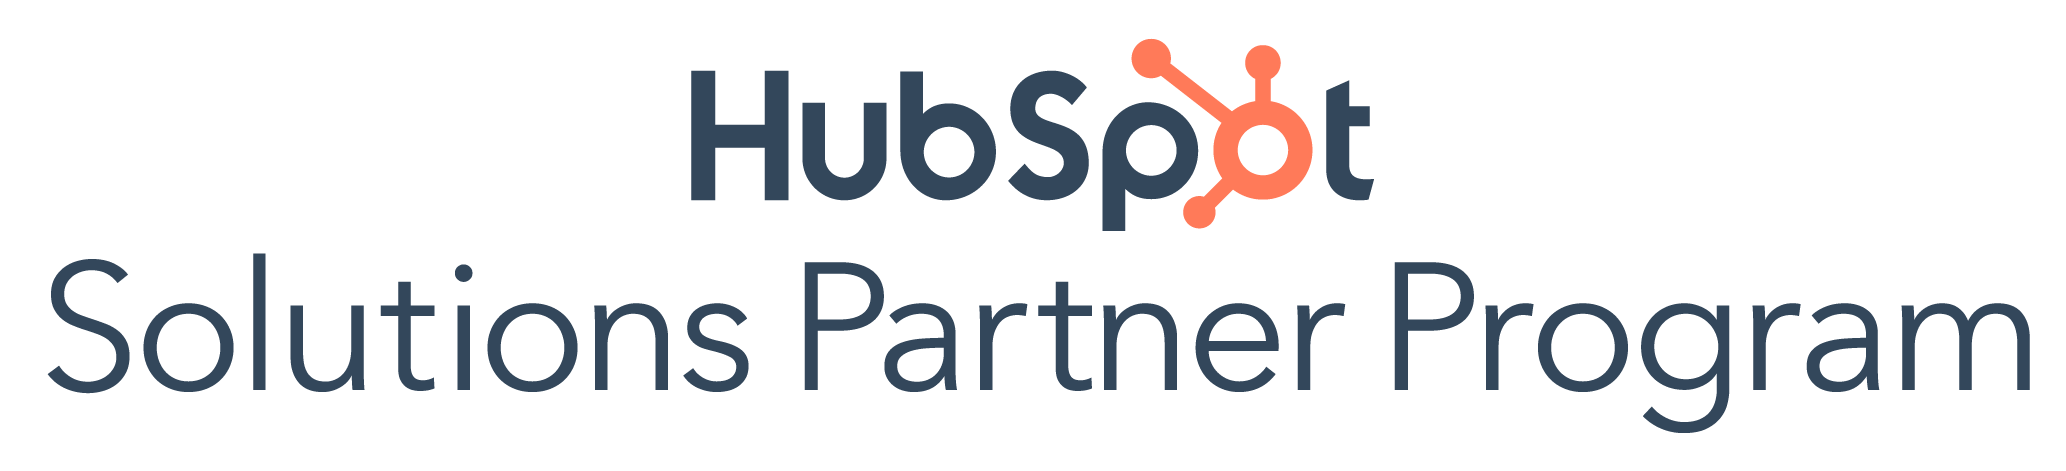 hubspot_solutionspartnerprogram-analytics that profit